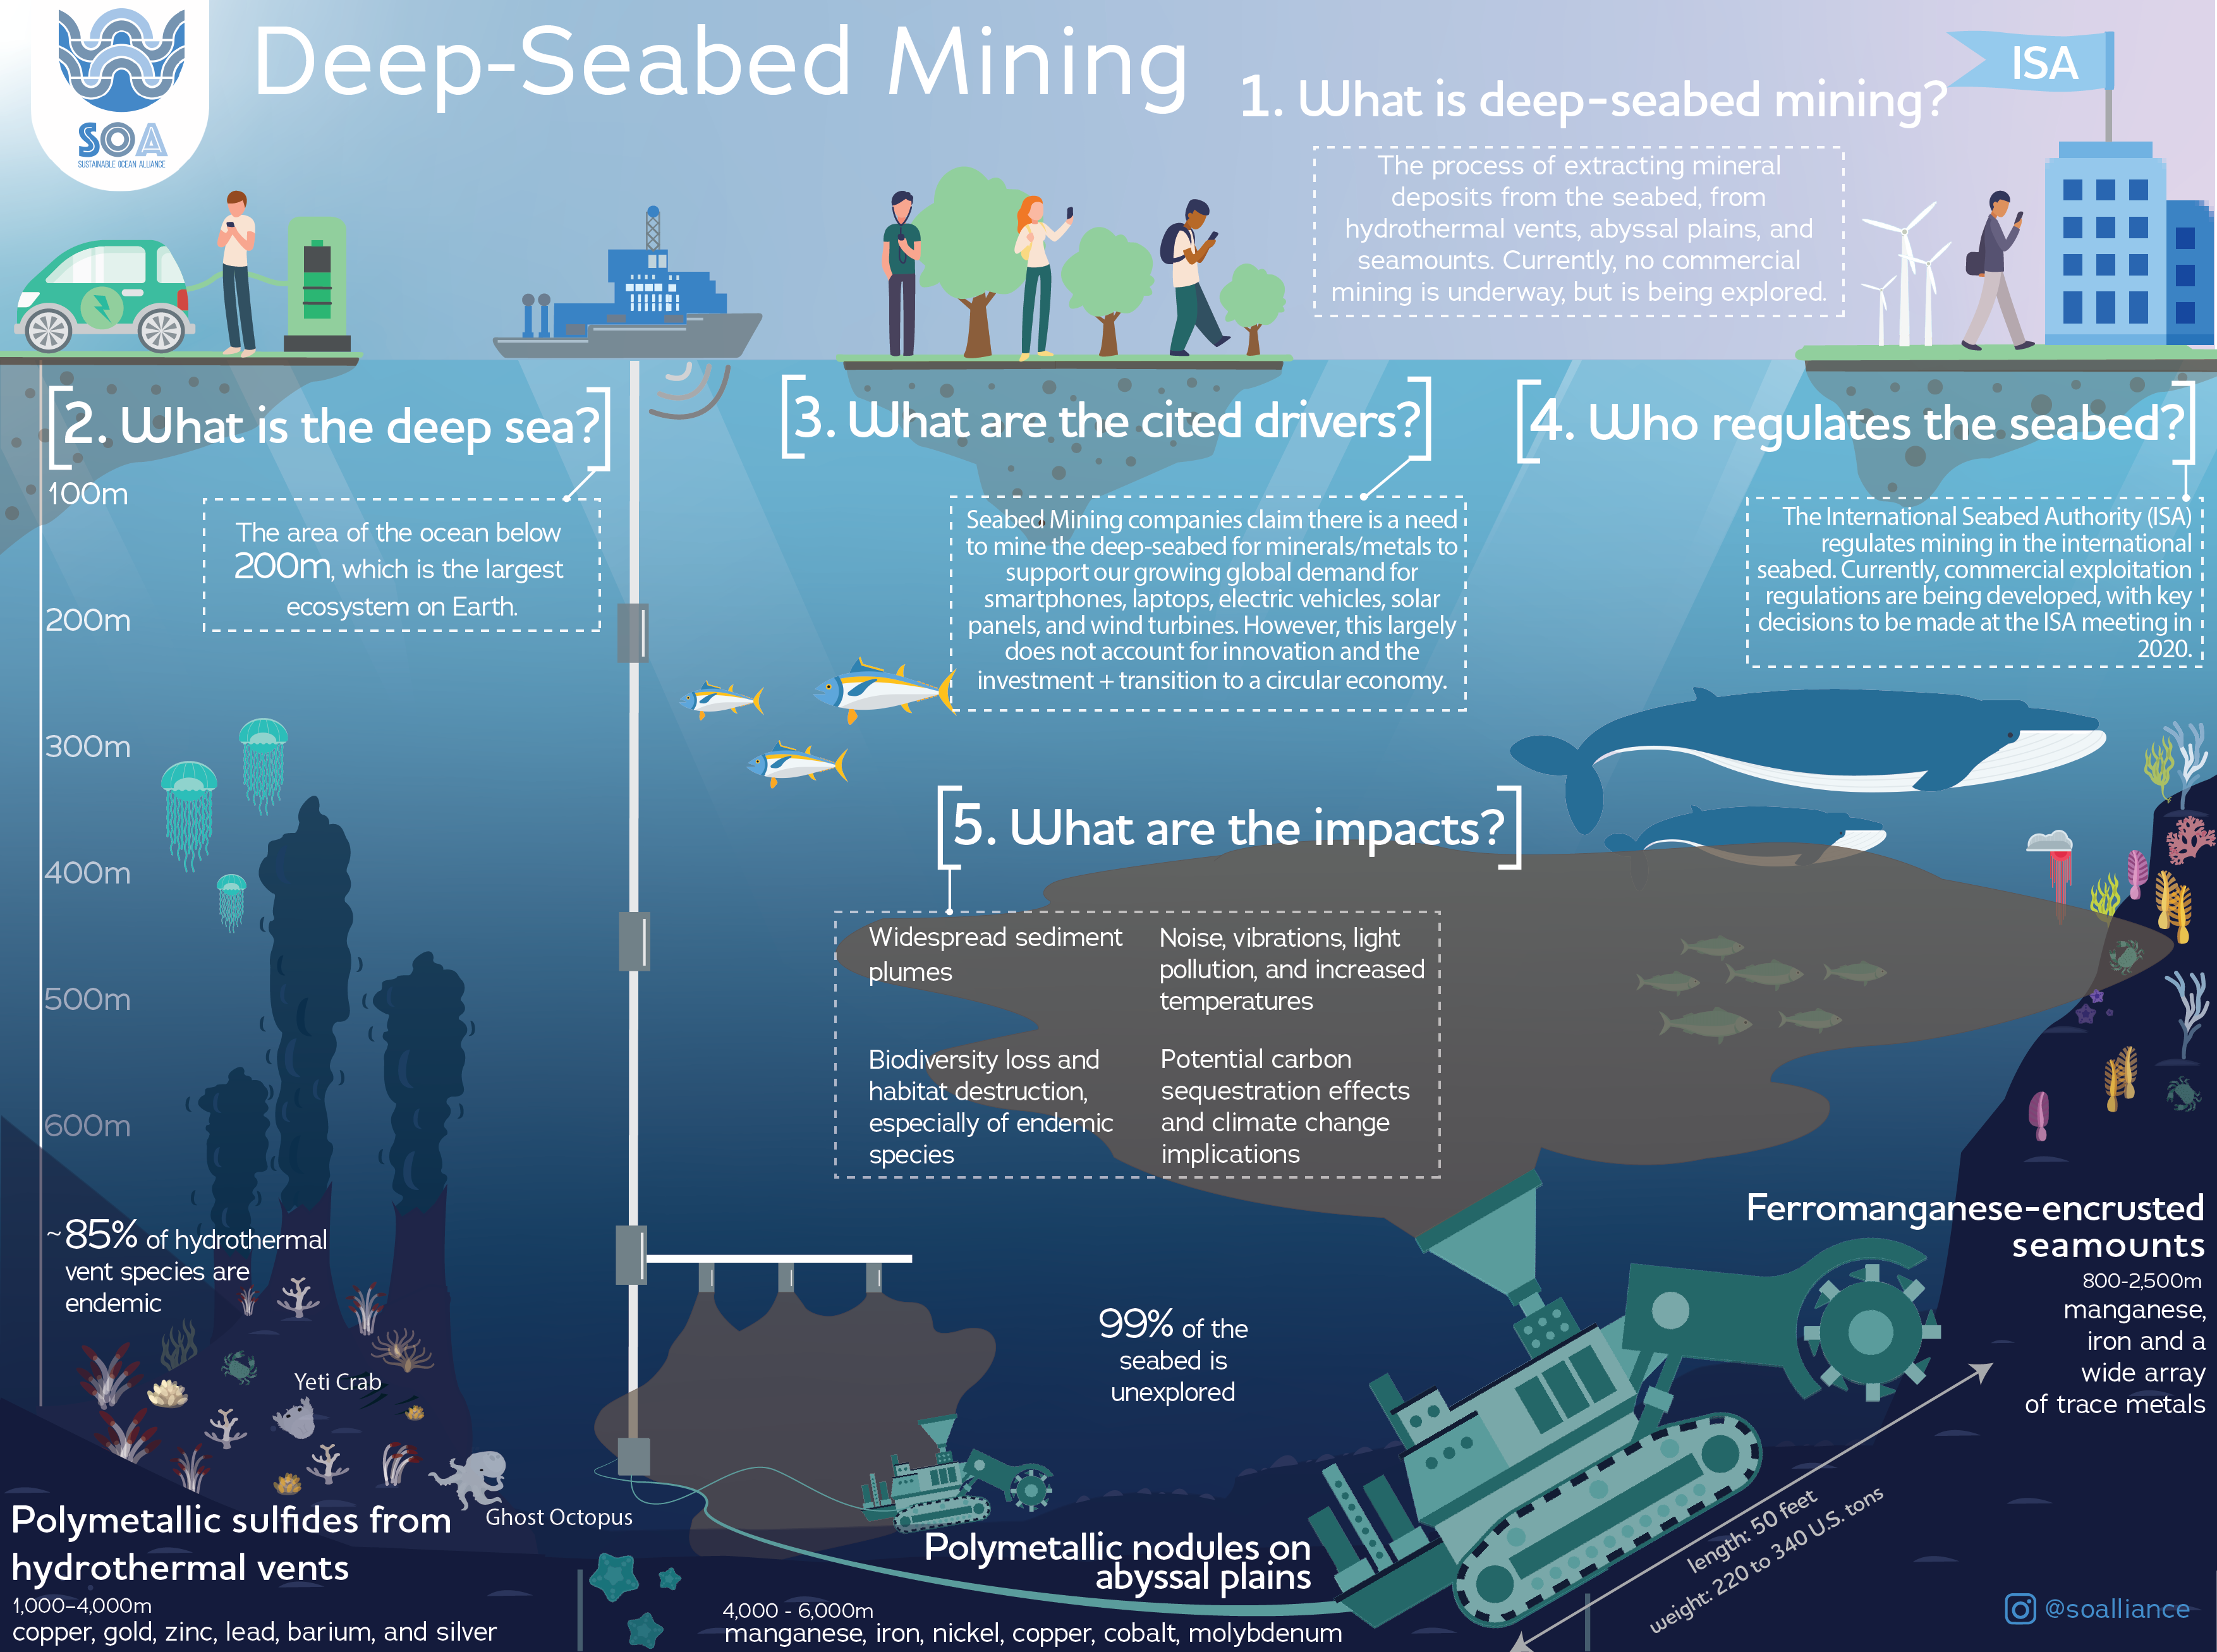 SOA Deep seabed mining infographic